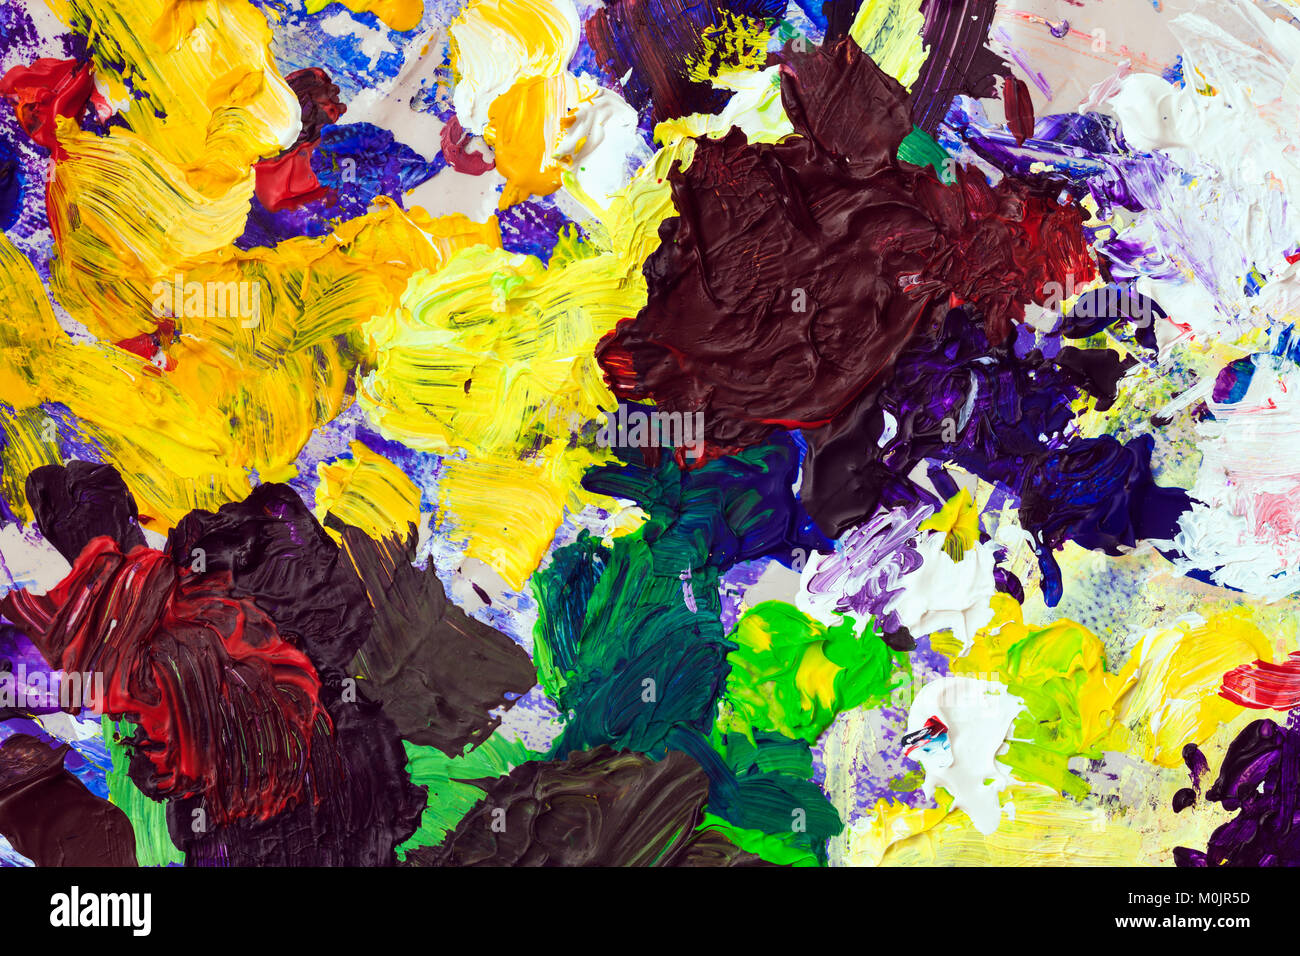 Bright palette of artist, texture of mixed oil paints in different colors, contrasting mix stains, splashes, texture - Stock Image